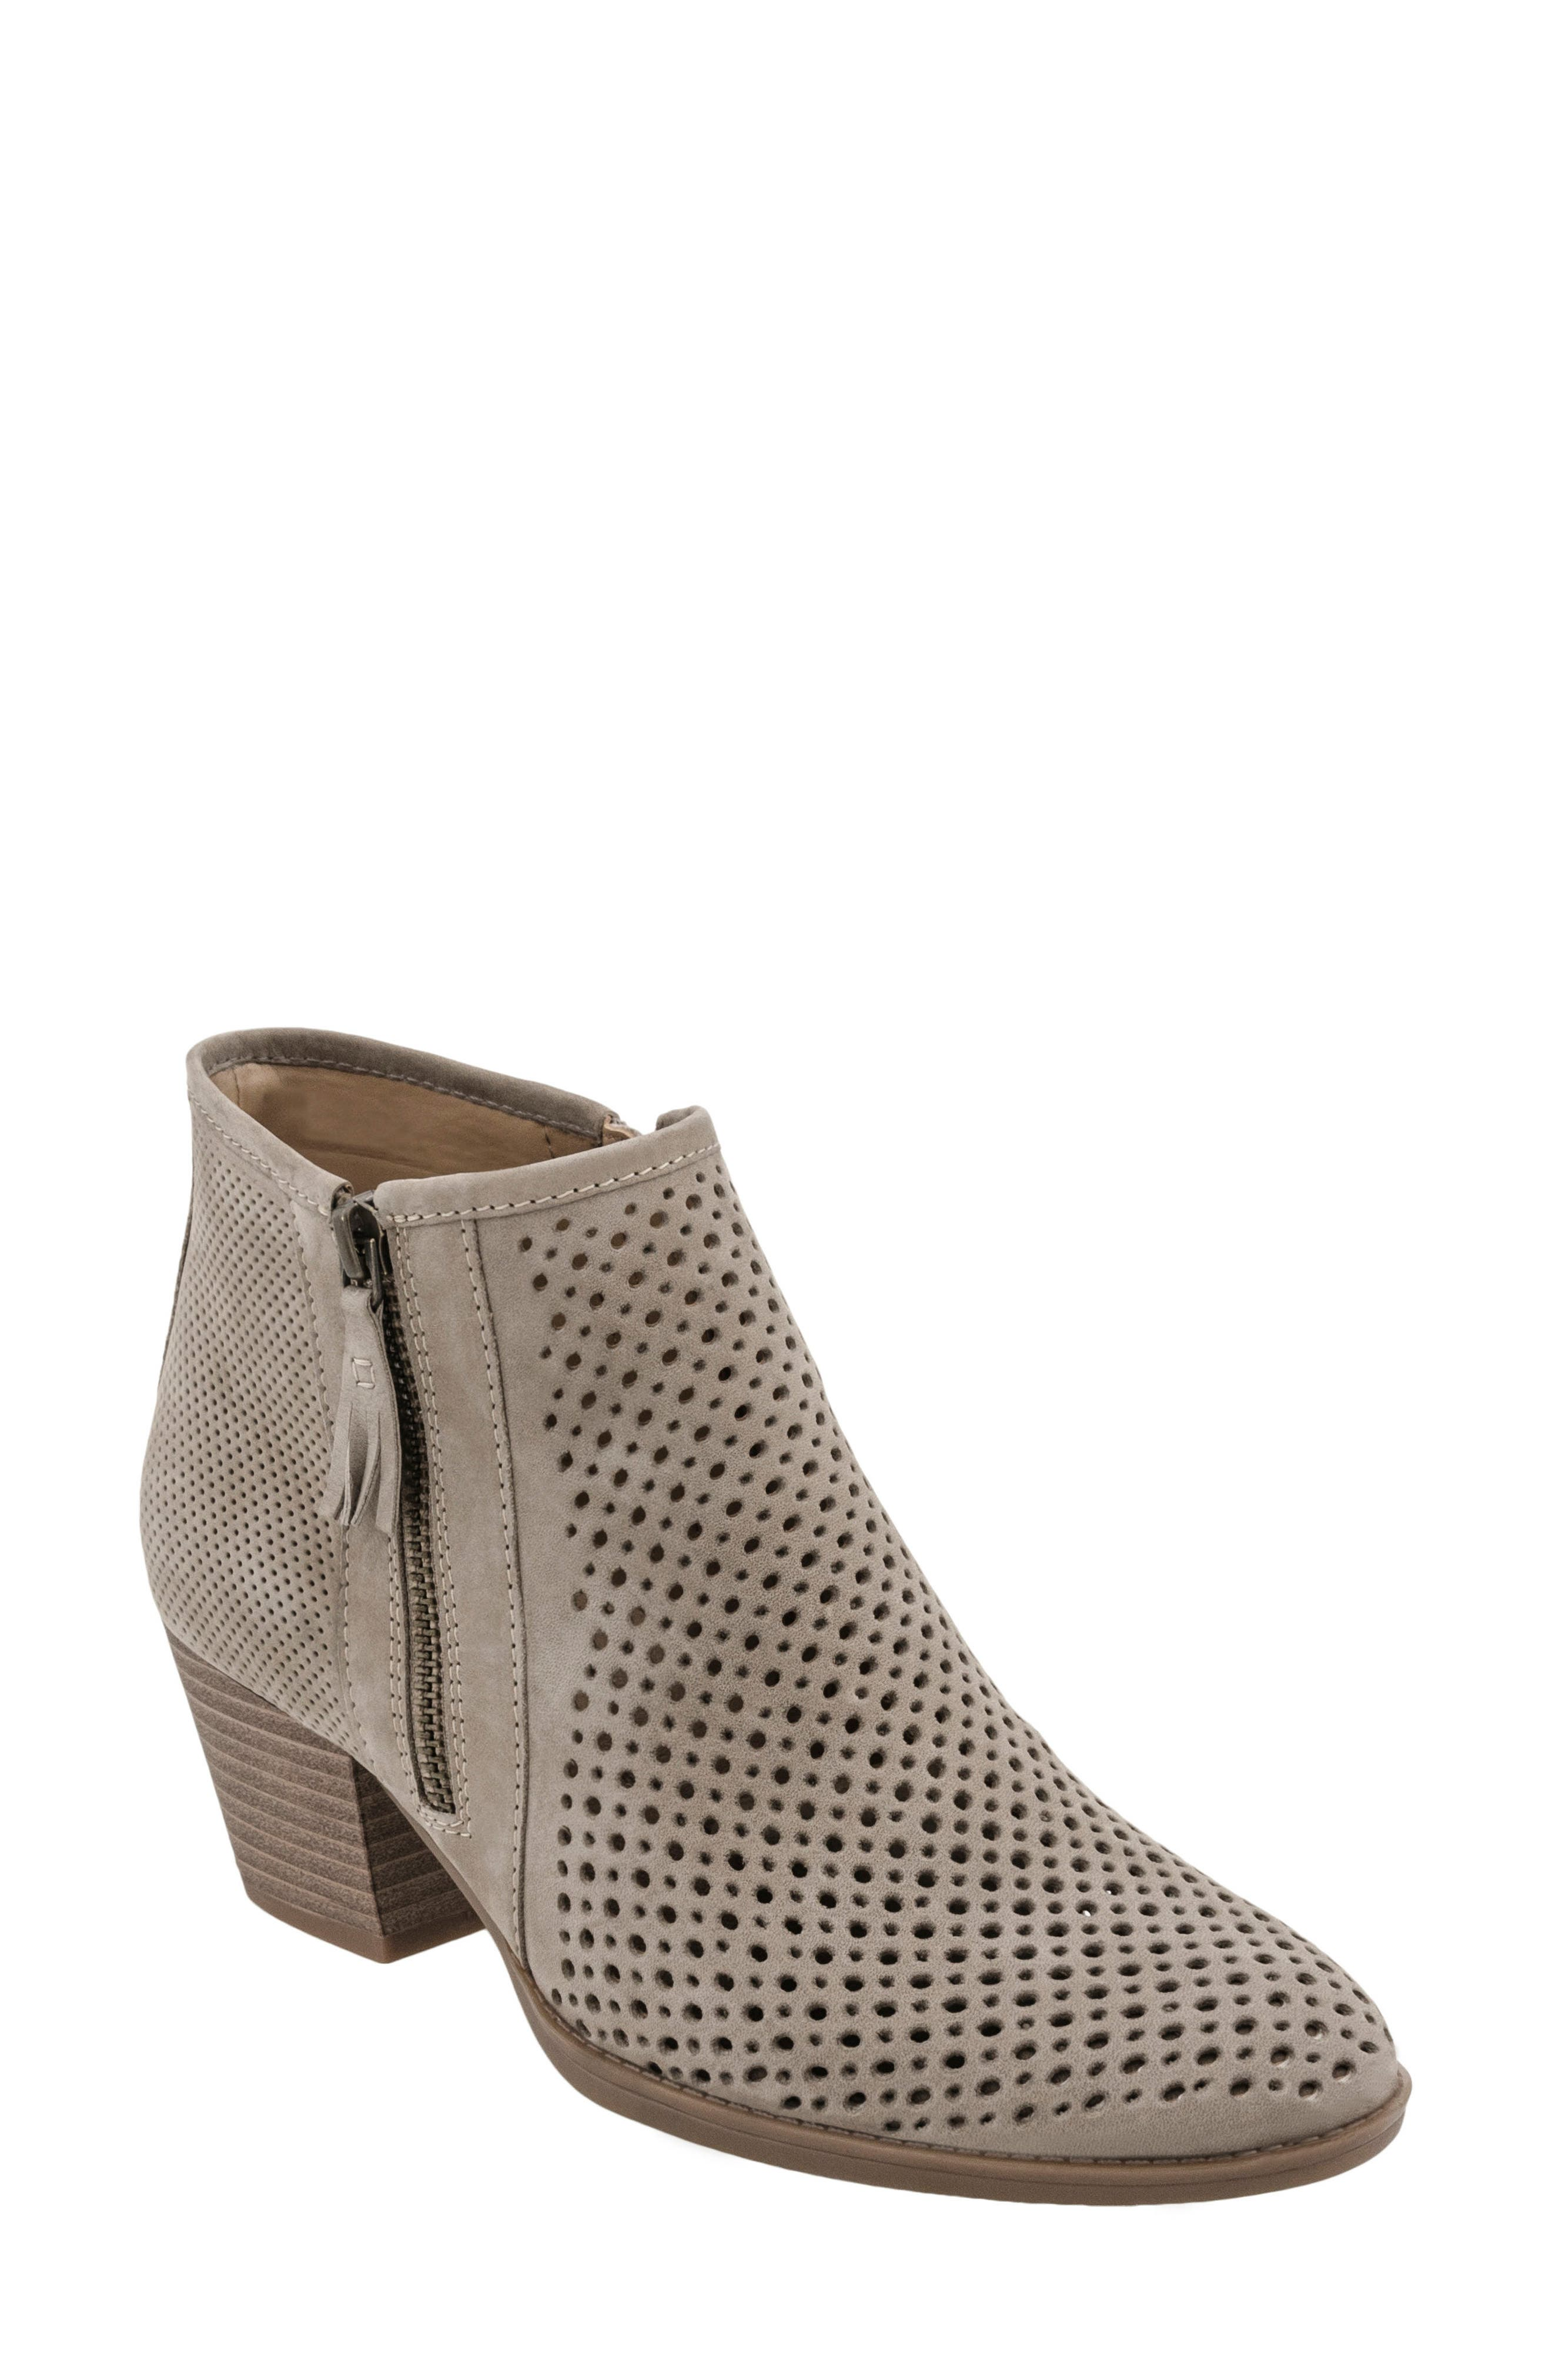 Pineberry Bootie,                             Main thumbnail 3, color,